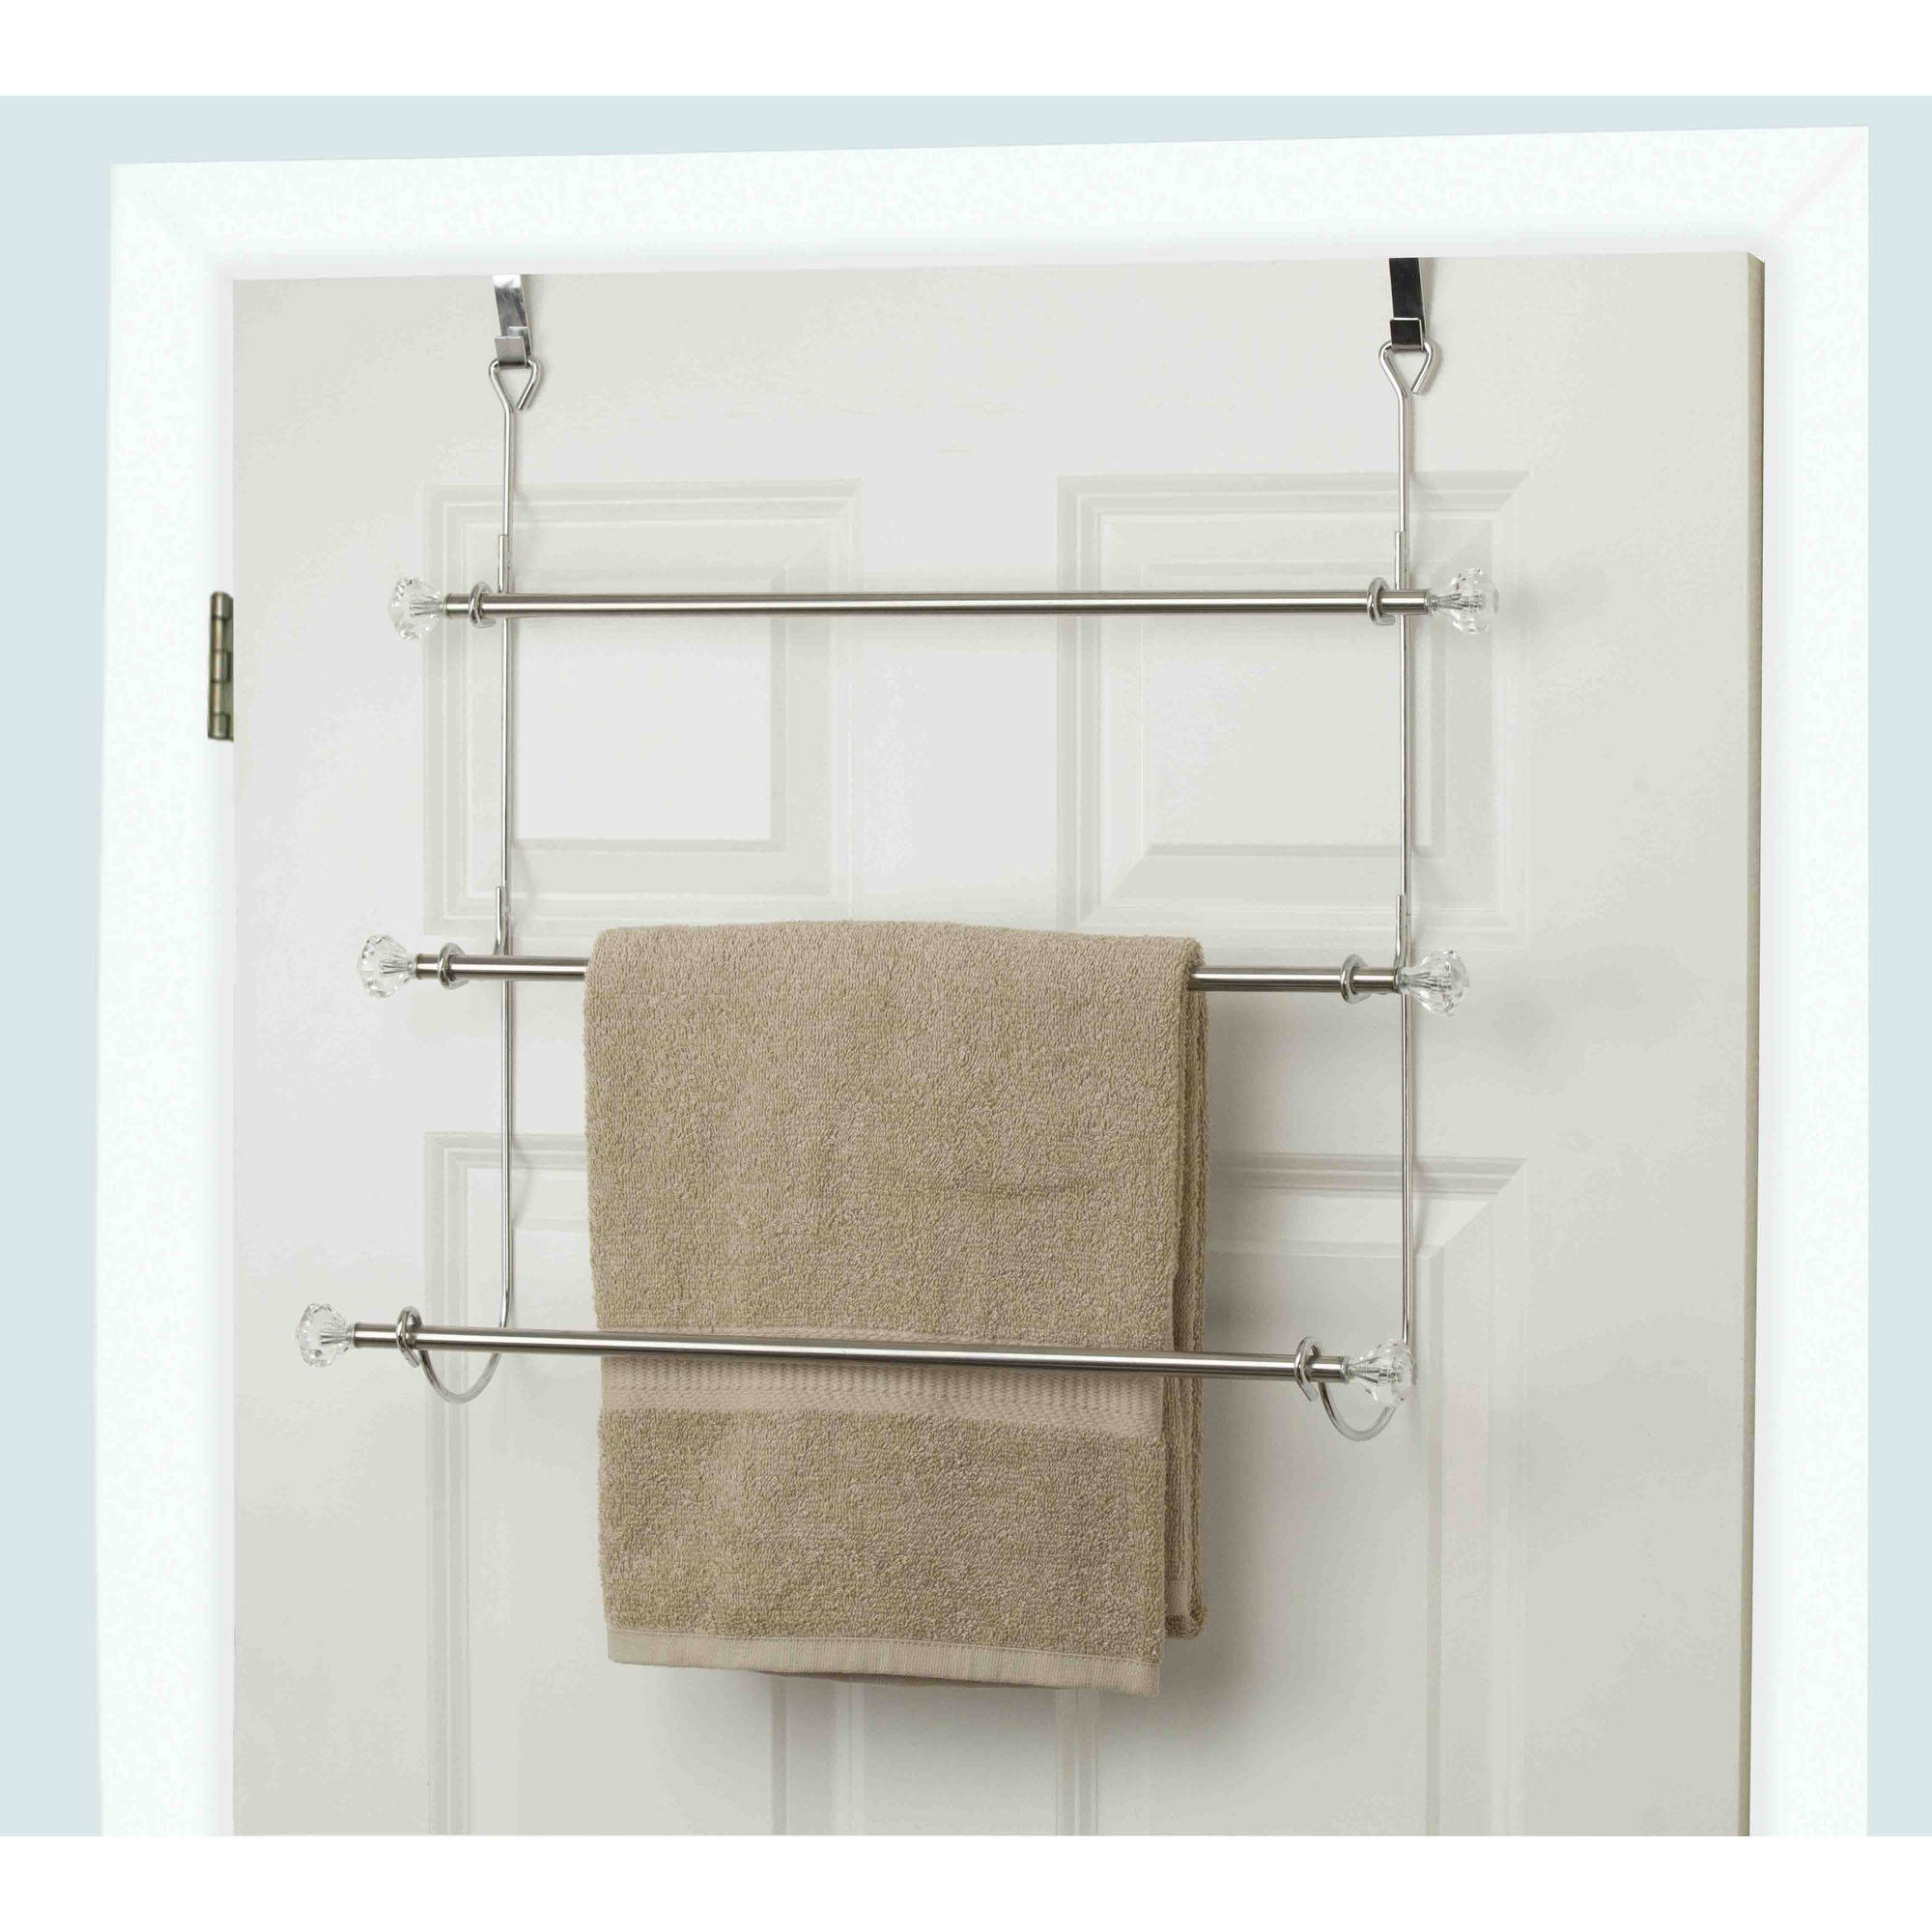 Over the door Towel Racks